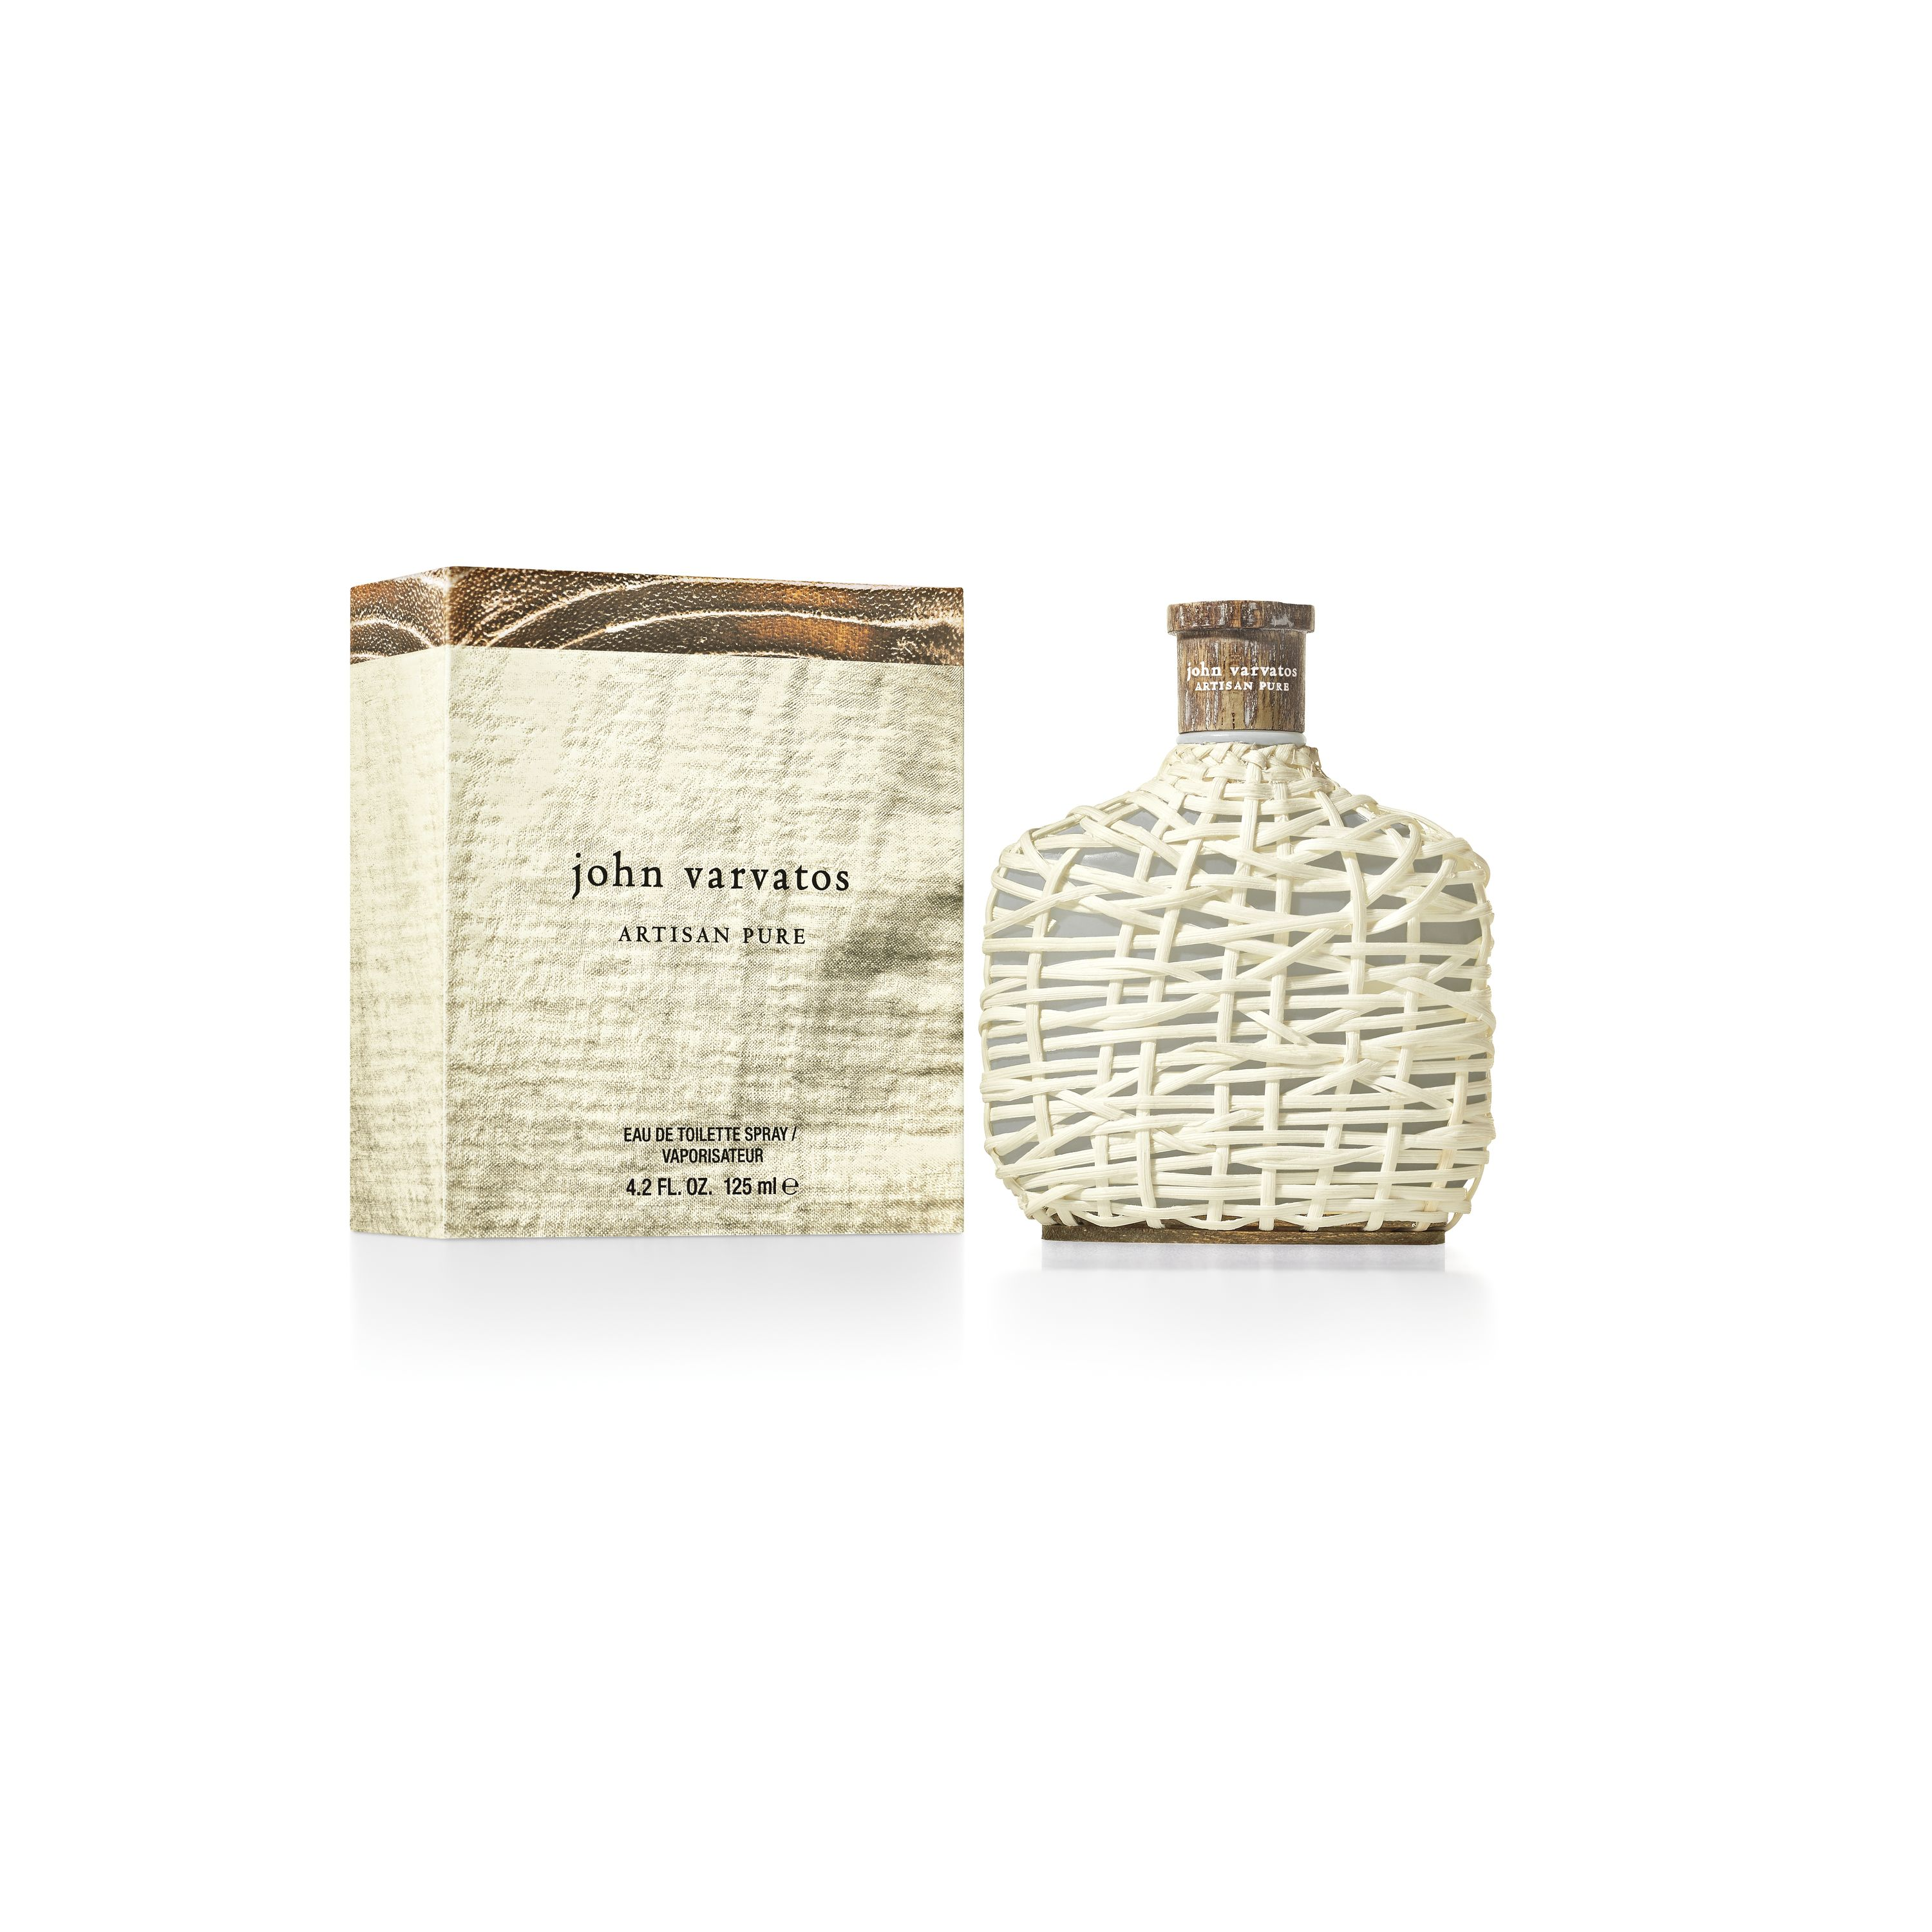 Med%20-%20John%20Varvatos%20Artisan%20Pure%20Packaging.jpg